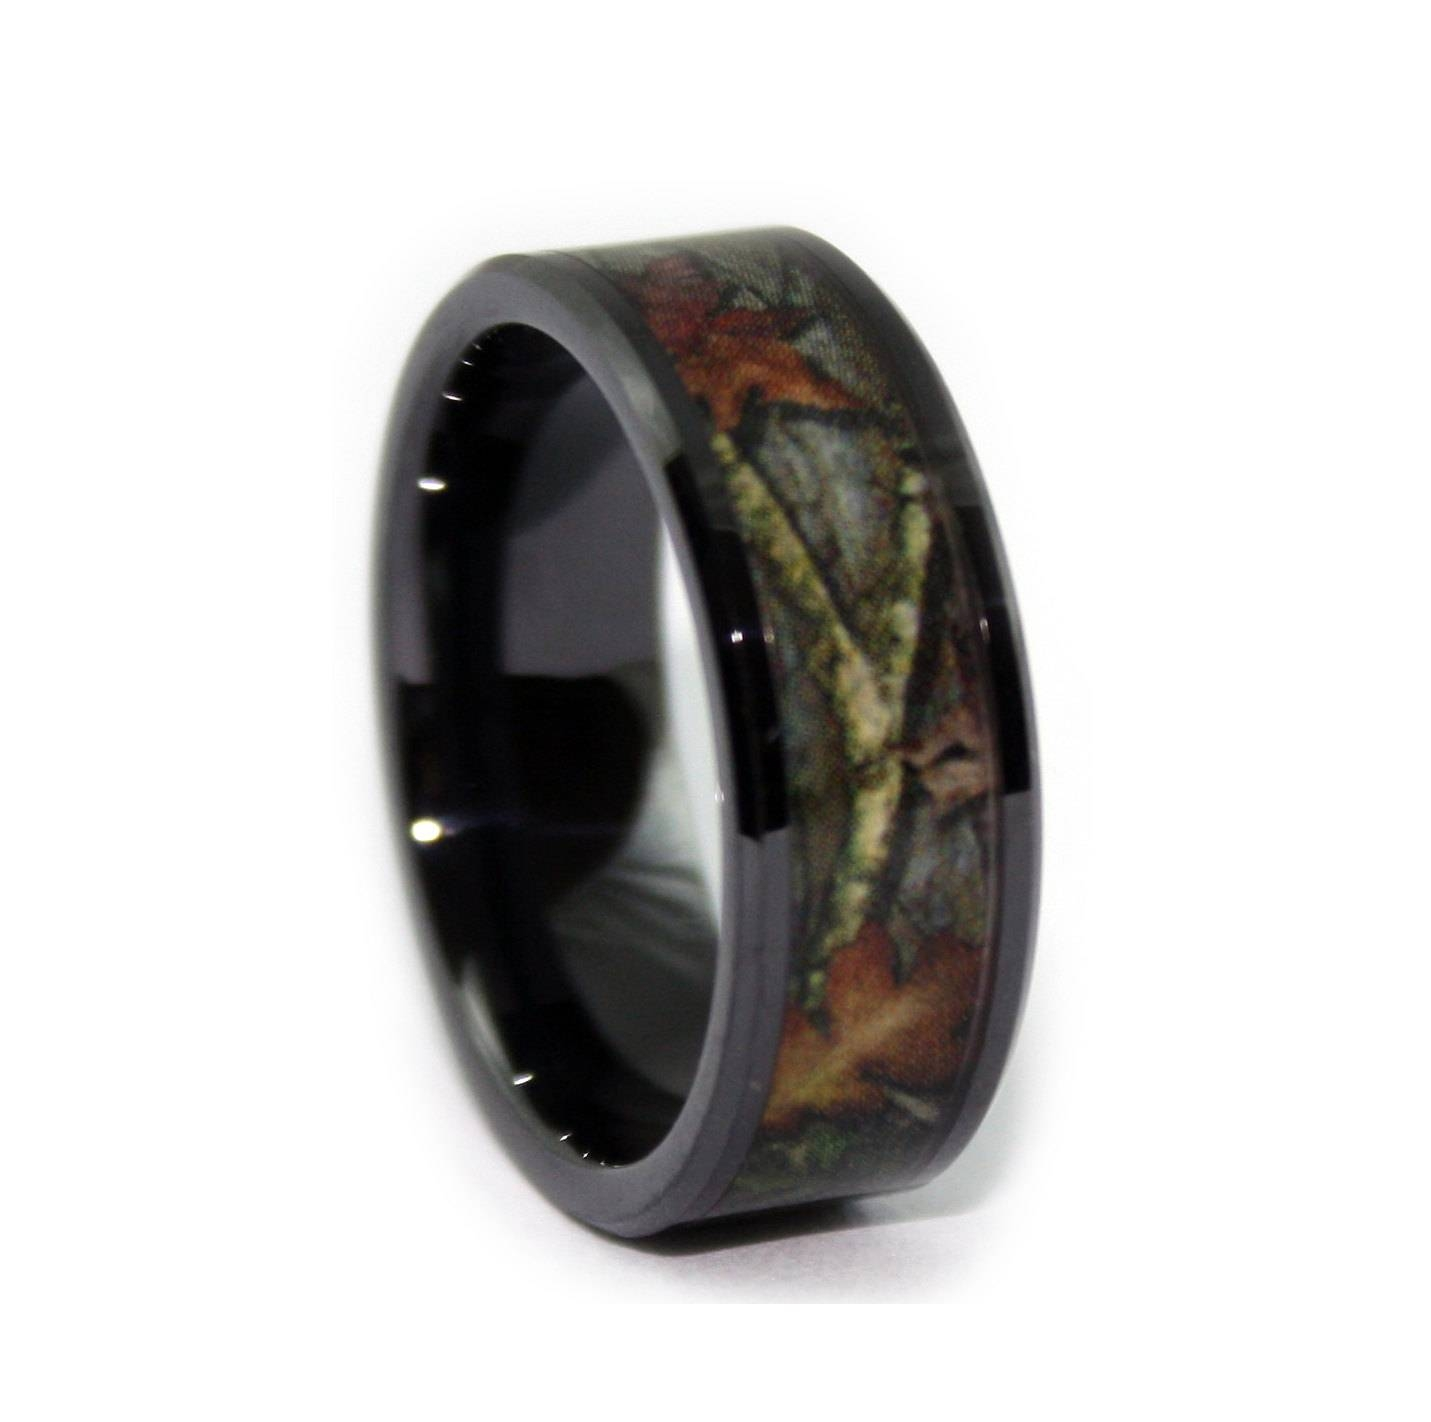 Camo Wedding Rings: Unique Wedding Ring Inspiration | Wedding Ideas In Camouflage Wedding Bands For Him (View 3 of 15)